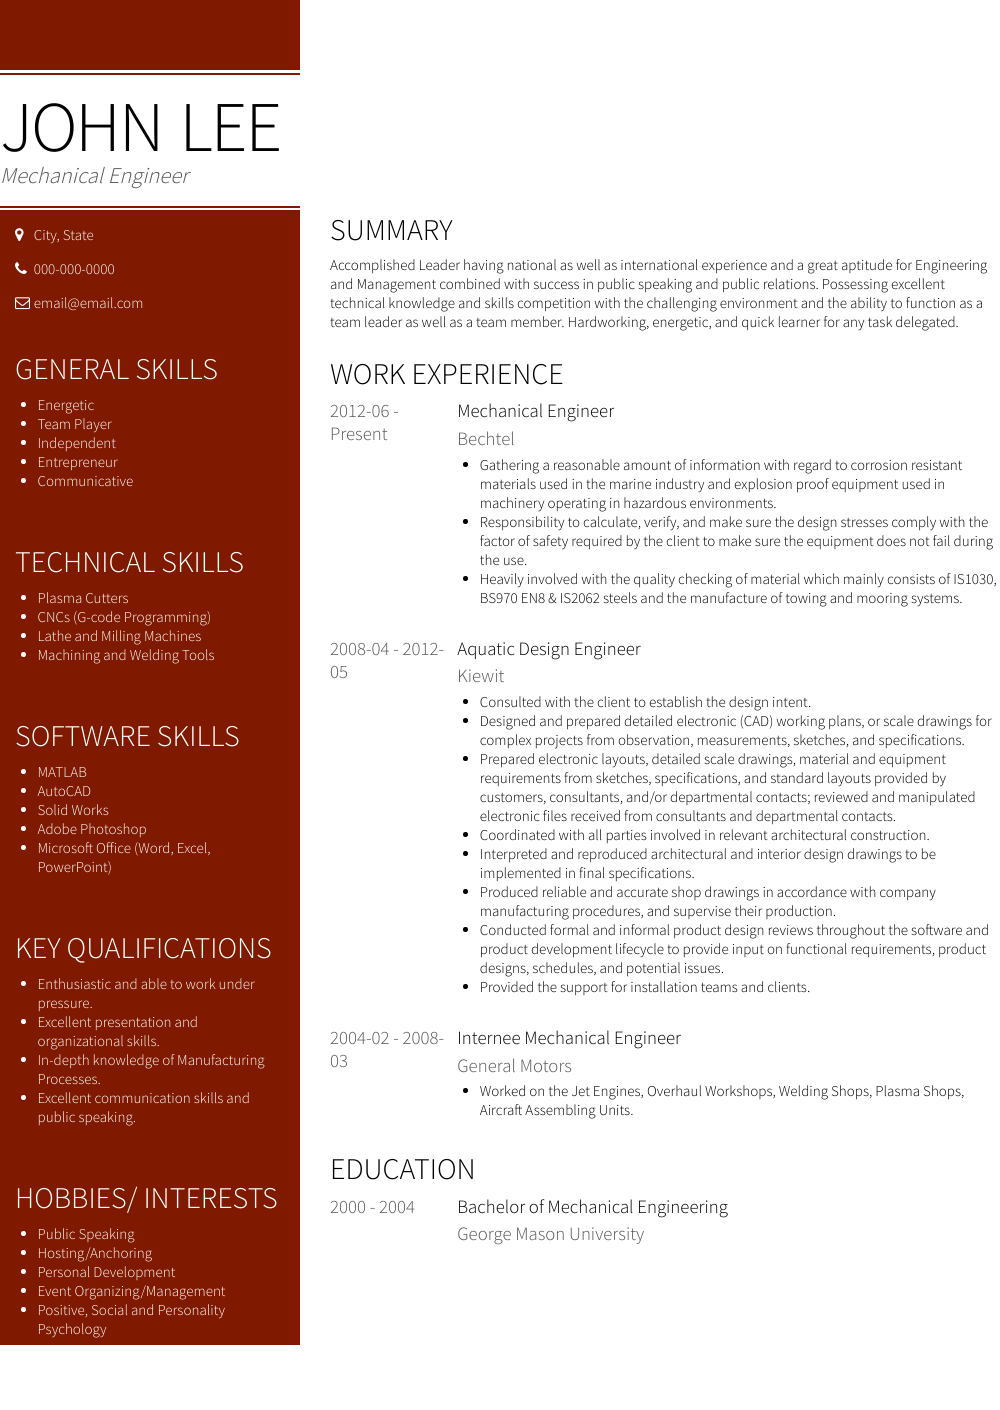 Mechanical Engineer Resume Sample and Template